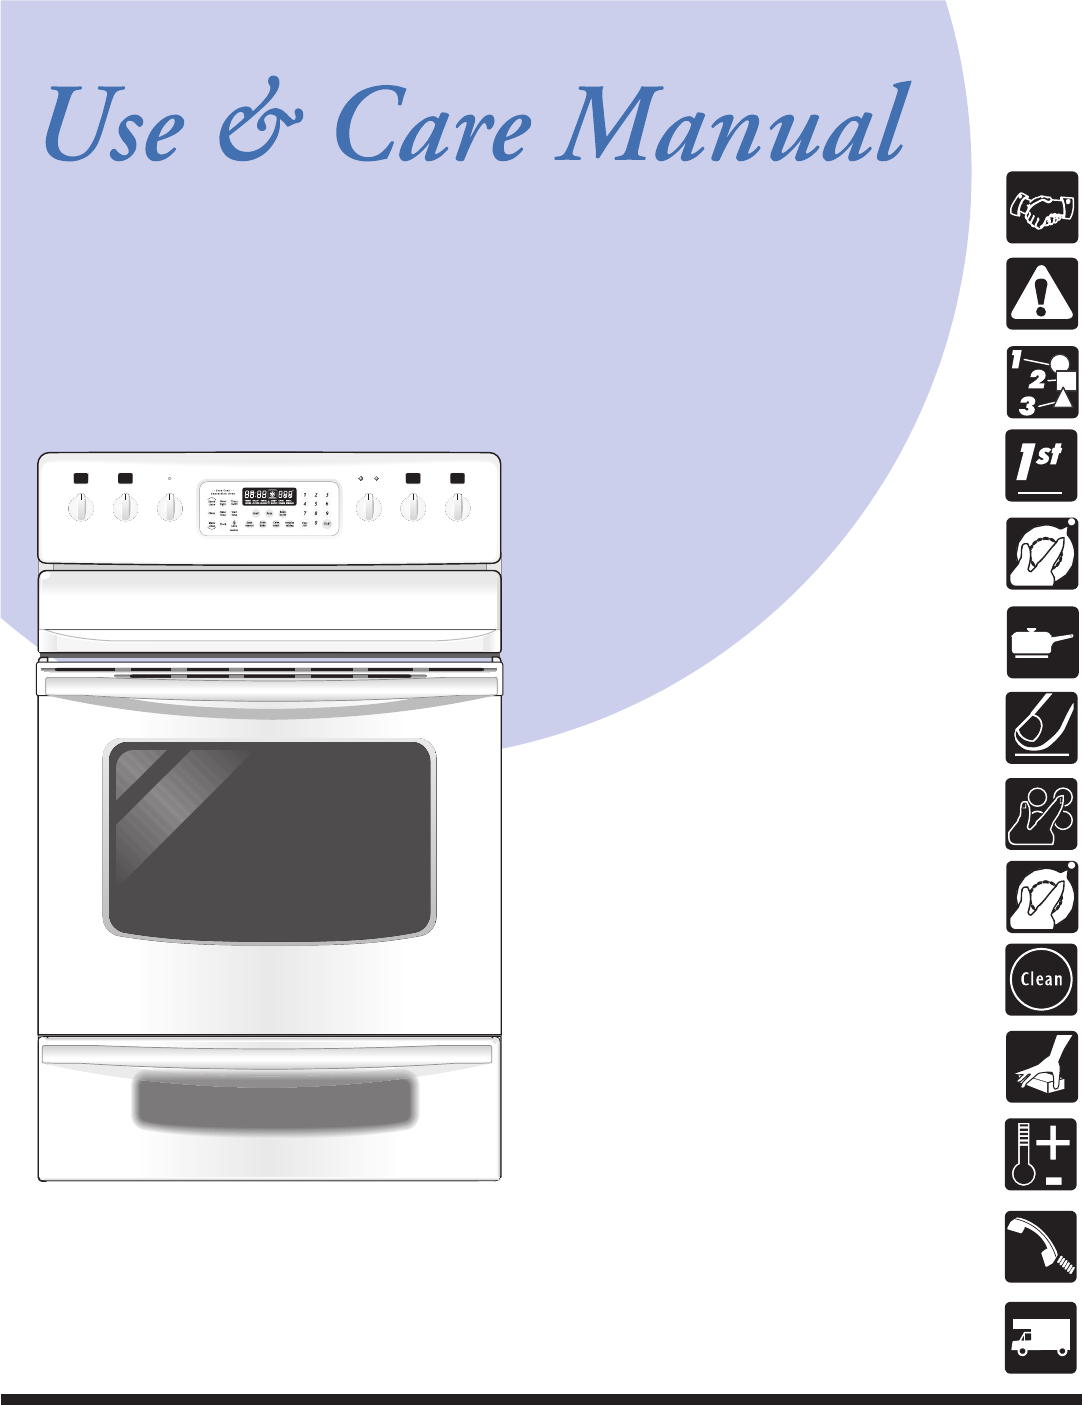 frigidaire range es510 user guide manualsonline com rh laundry manualsonline com frigidaire gallery self cleaning oven instruction manual frigidaire gallery gas oven manual self cleaning